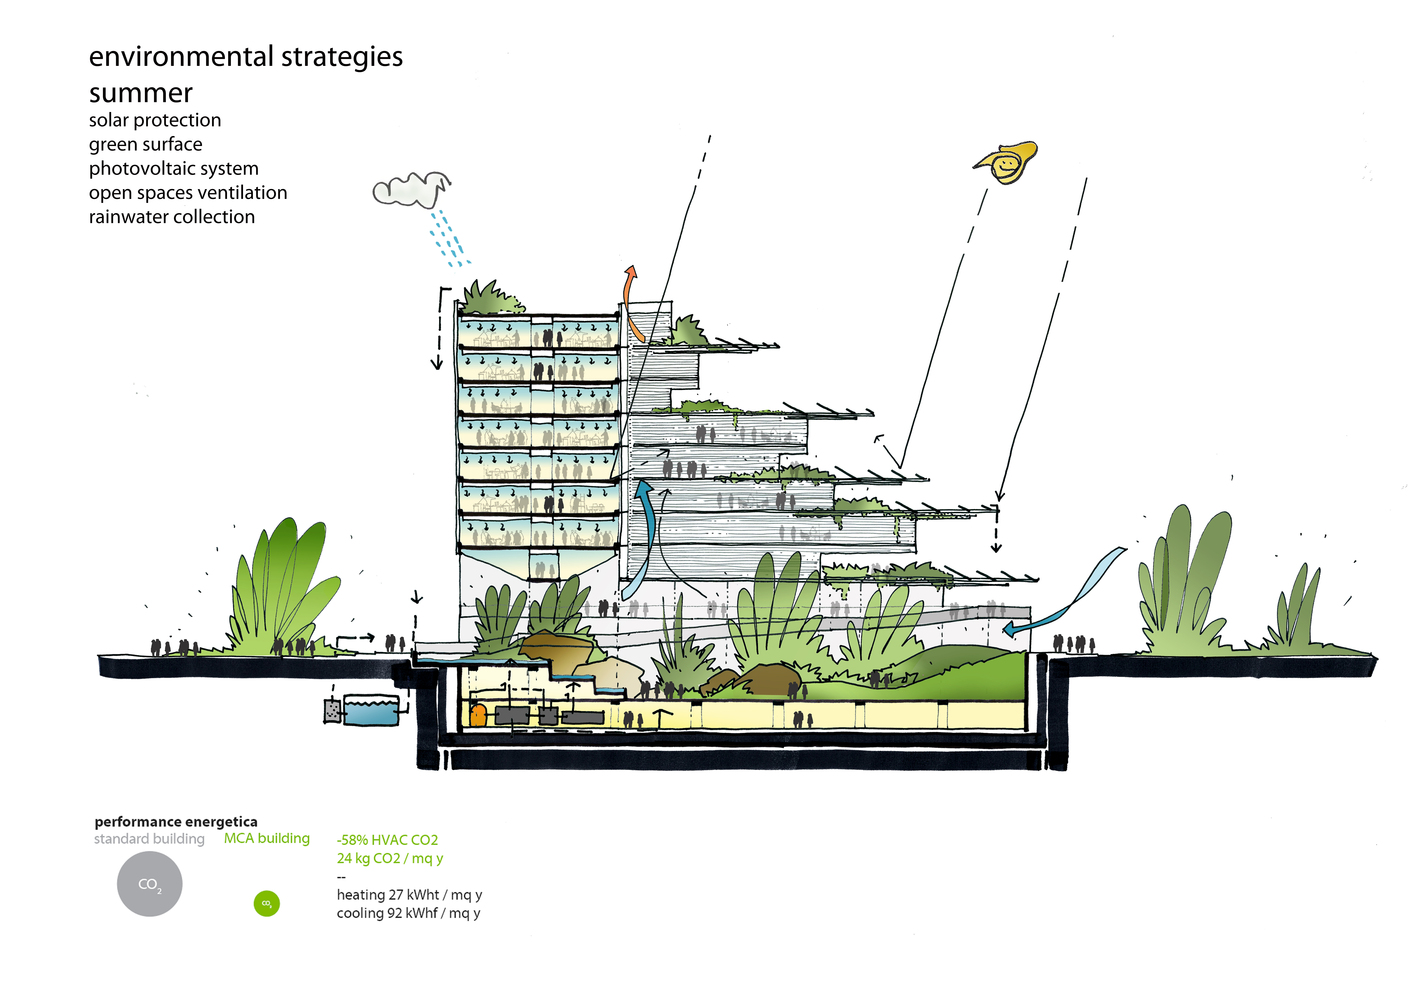 hight resolution of sino italian ecological and energy efficient building summer diagram